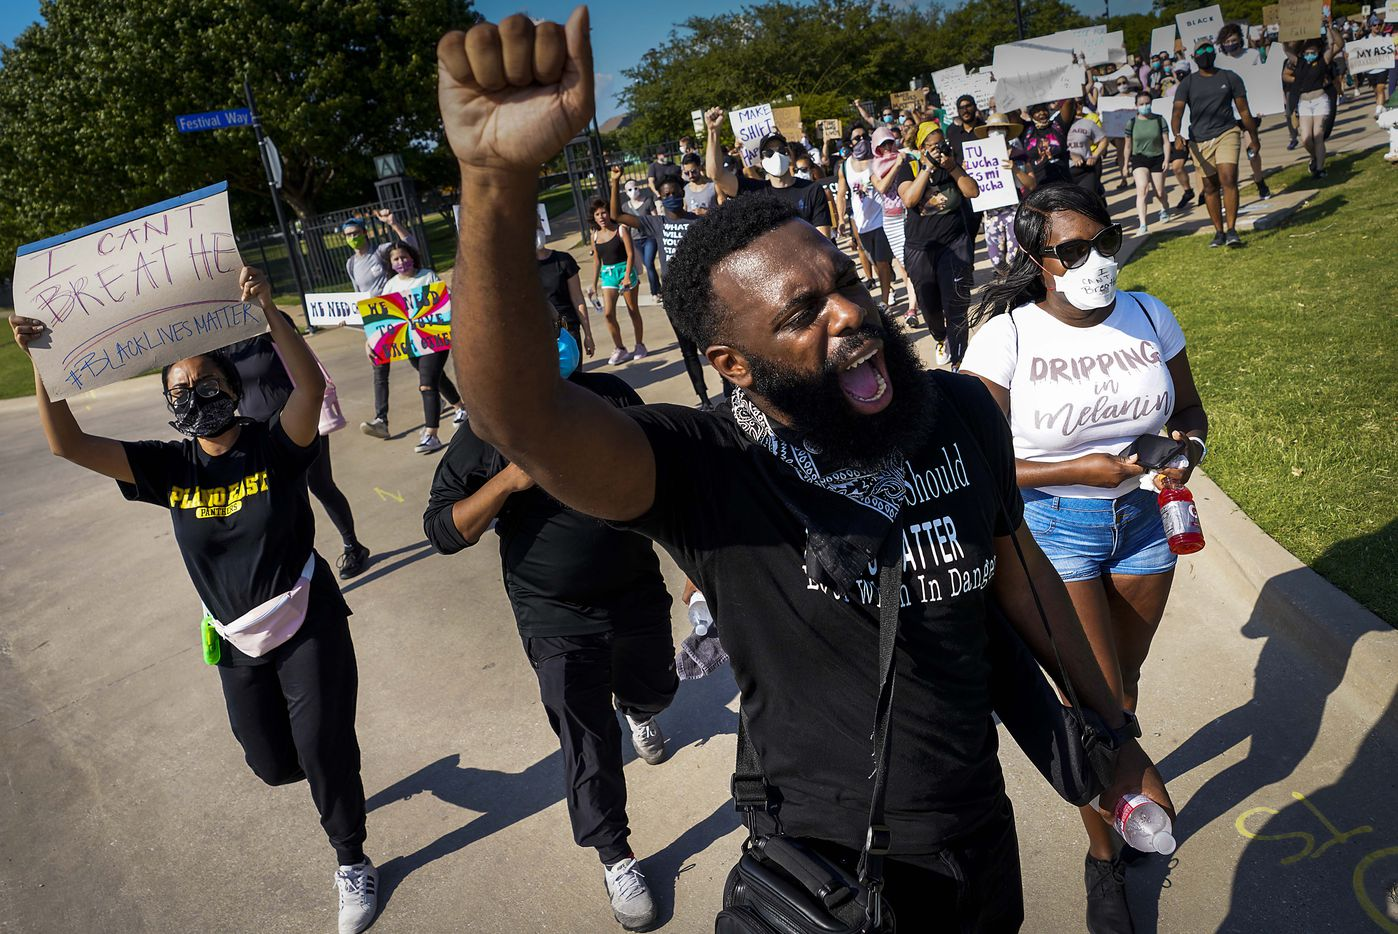 Brandon Moore leads marchers during a protest on Thursday, June 4, 2020, in Addison. Protests continued Thursday in the response to the death of George Floyd.